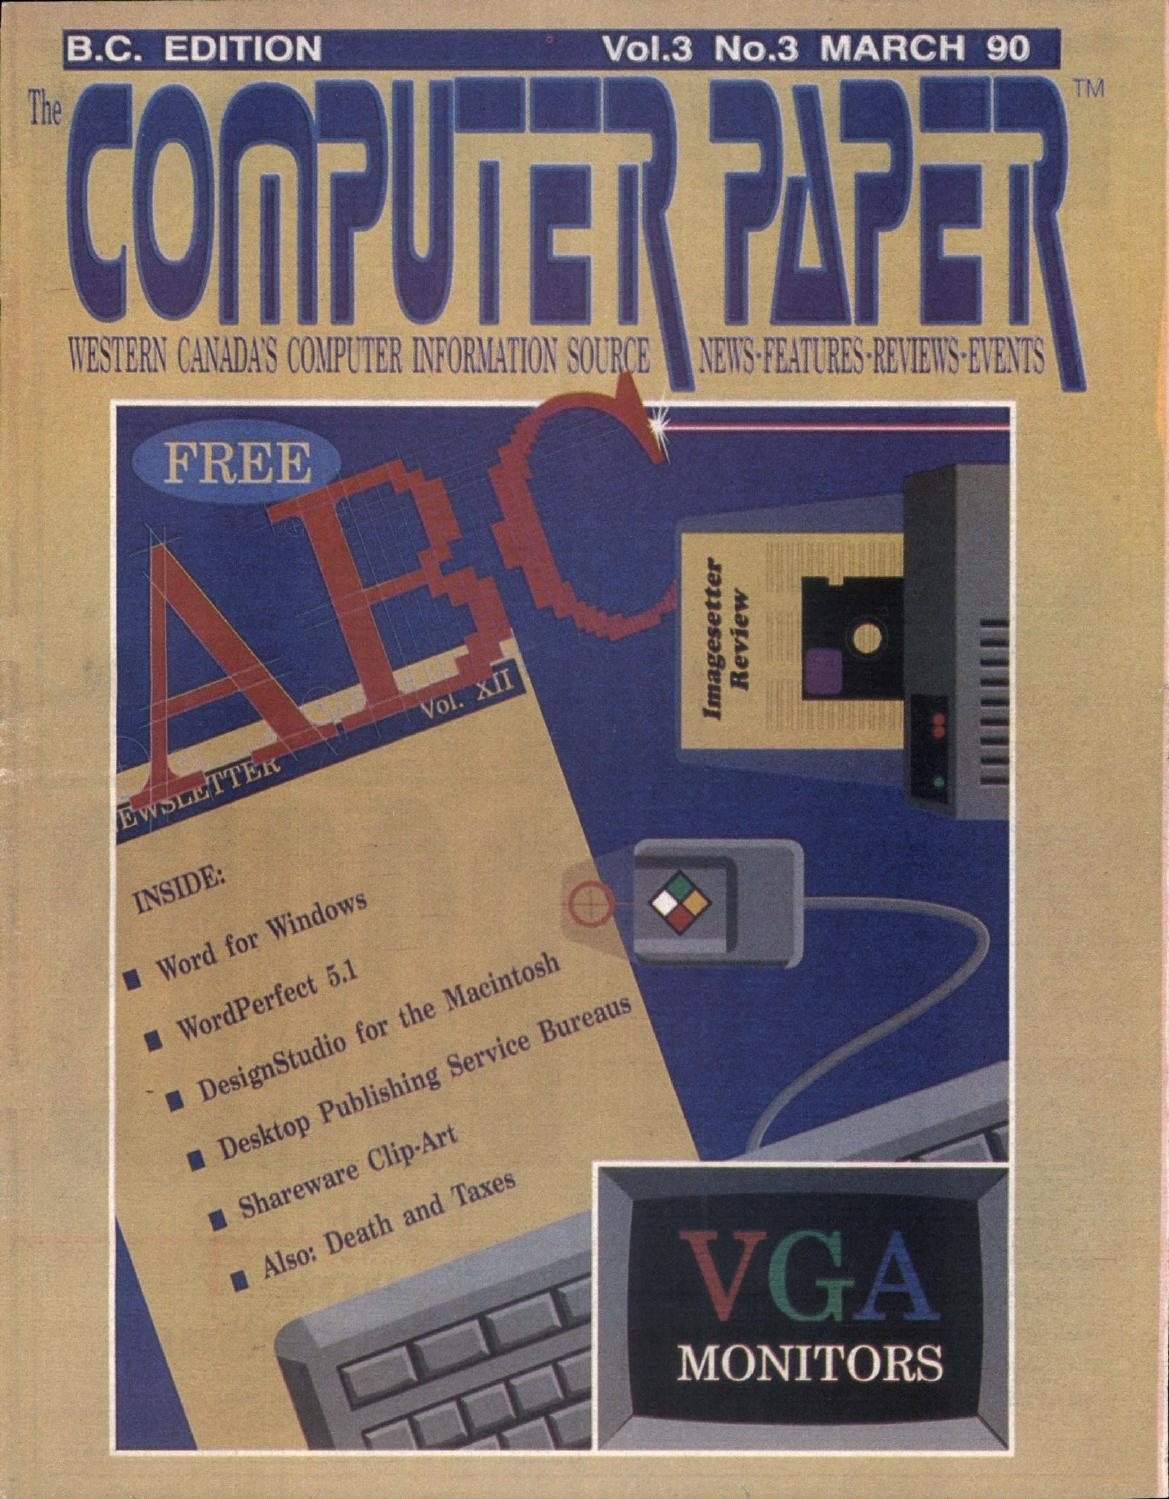 1990 03 The Computer Paper - BC Edition by The Computer